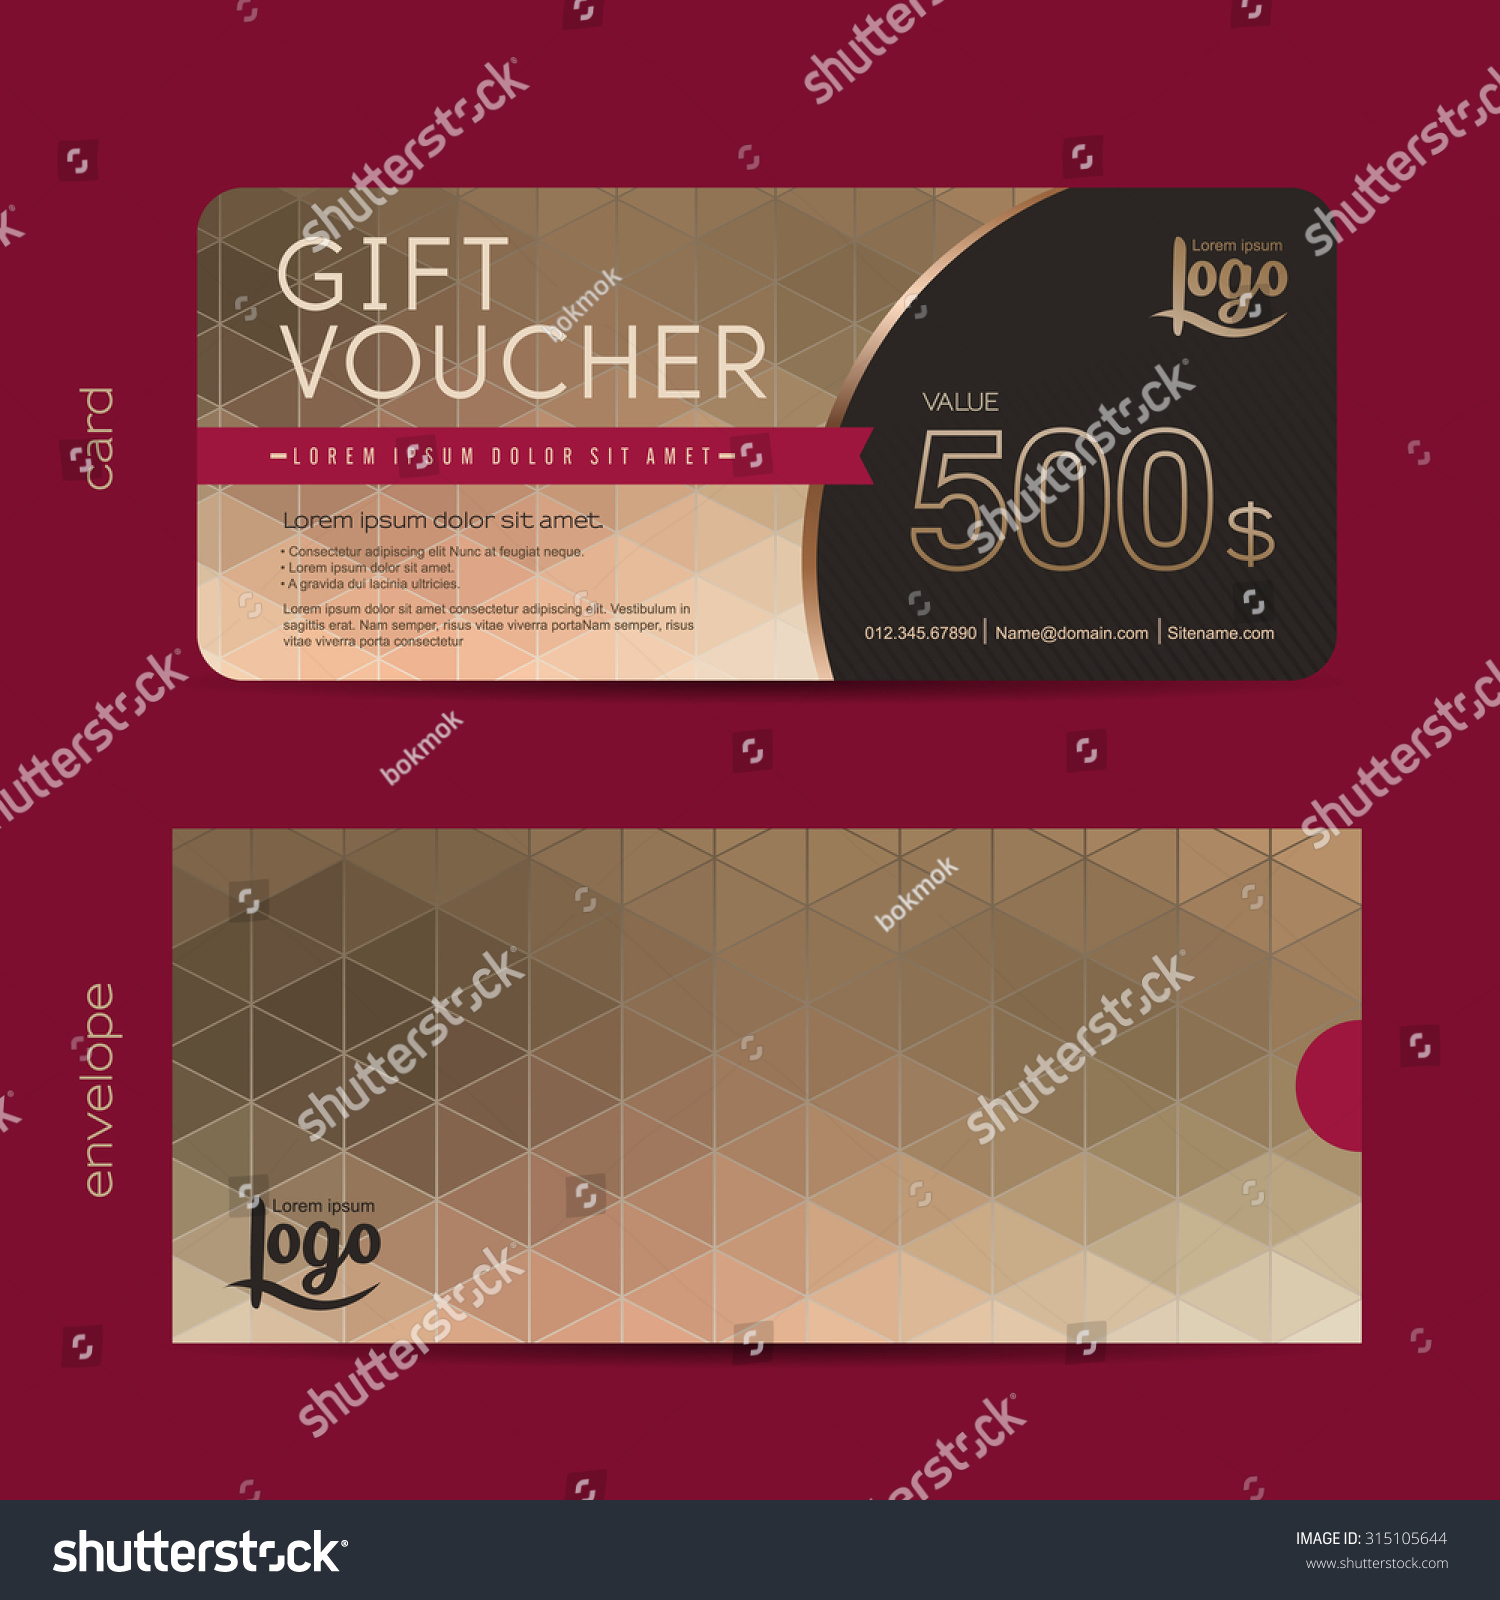 Gift Voucher Template Premium Patterngift Voucher Stock Vector